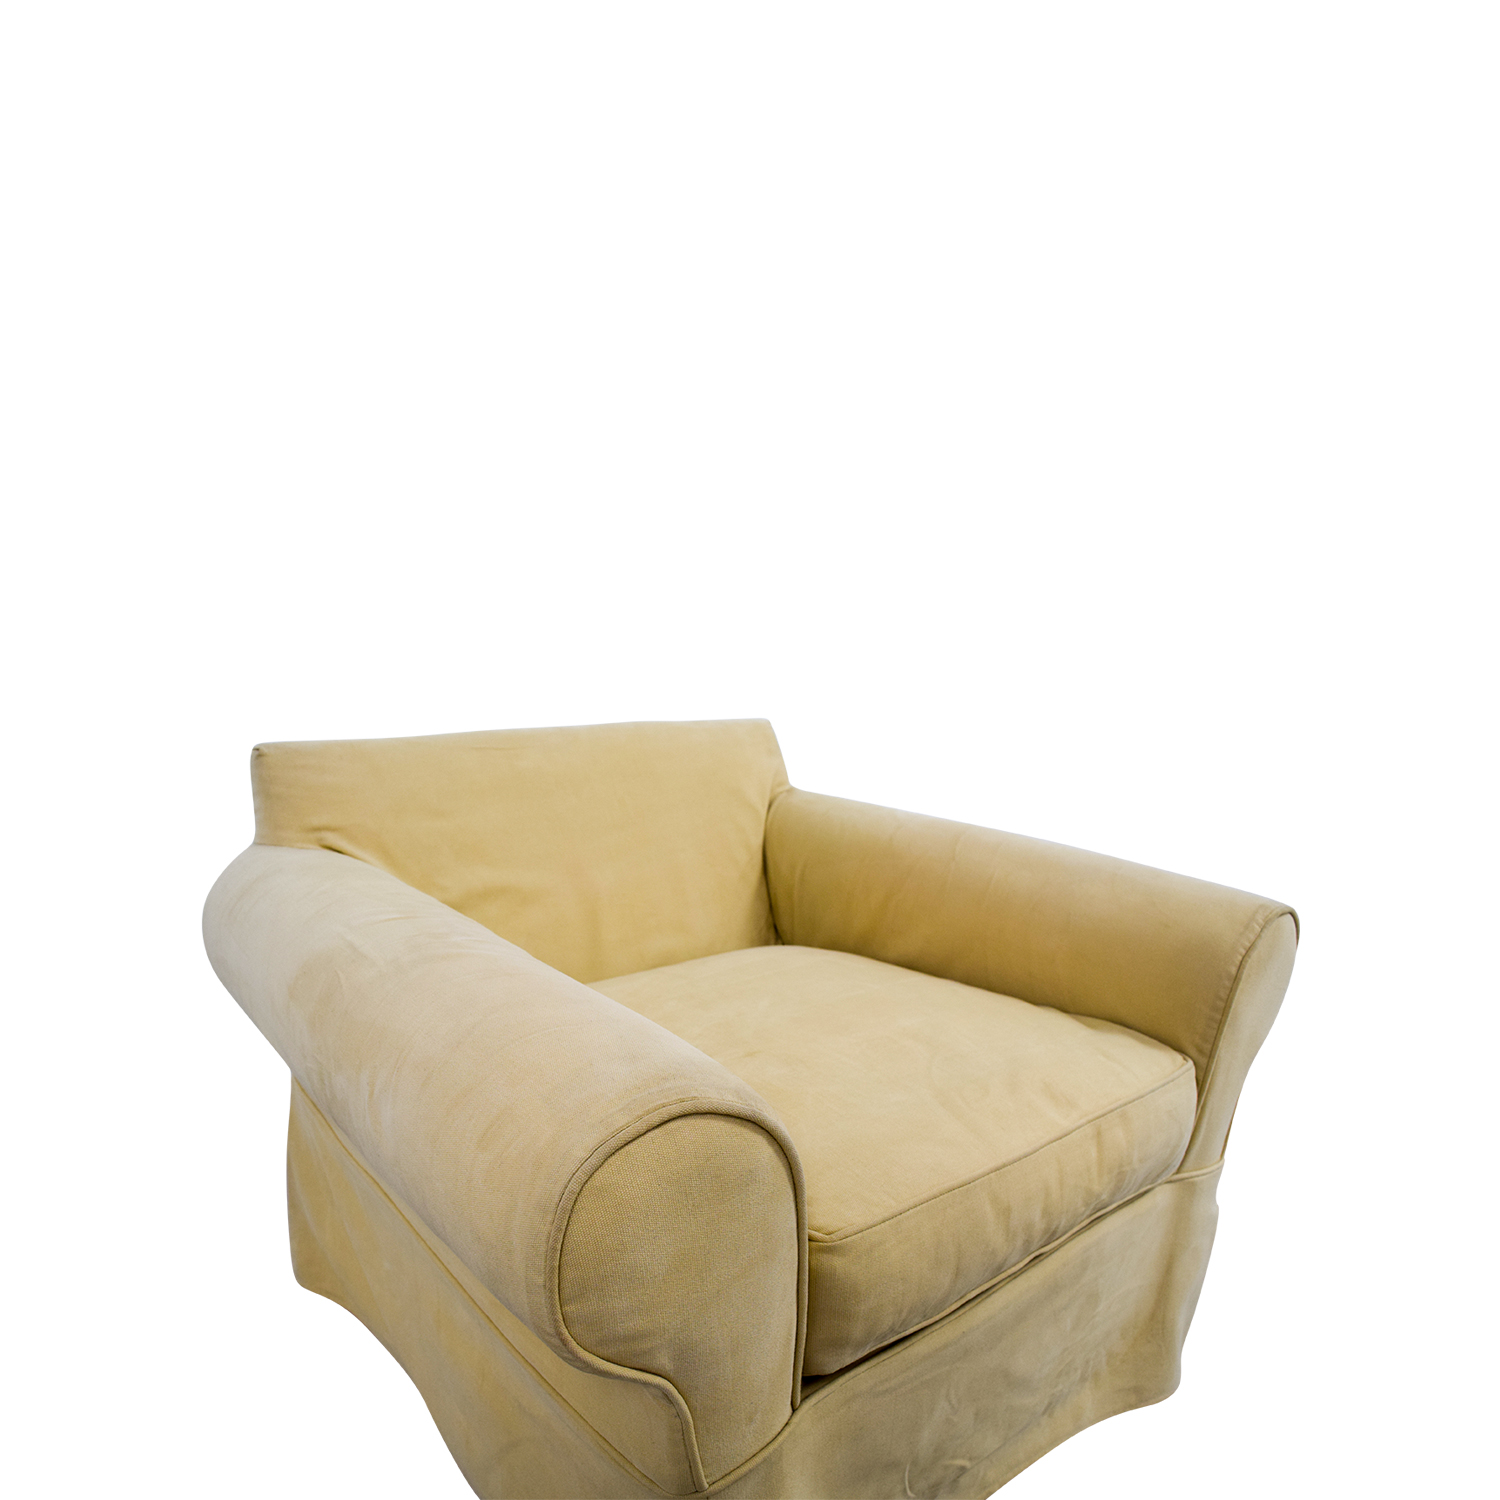 Pottery Barn Pottery Barn Classic Armchair / Chairs